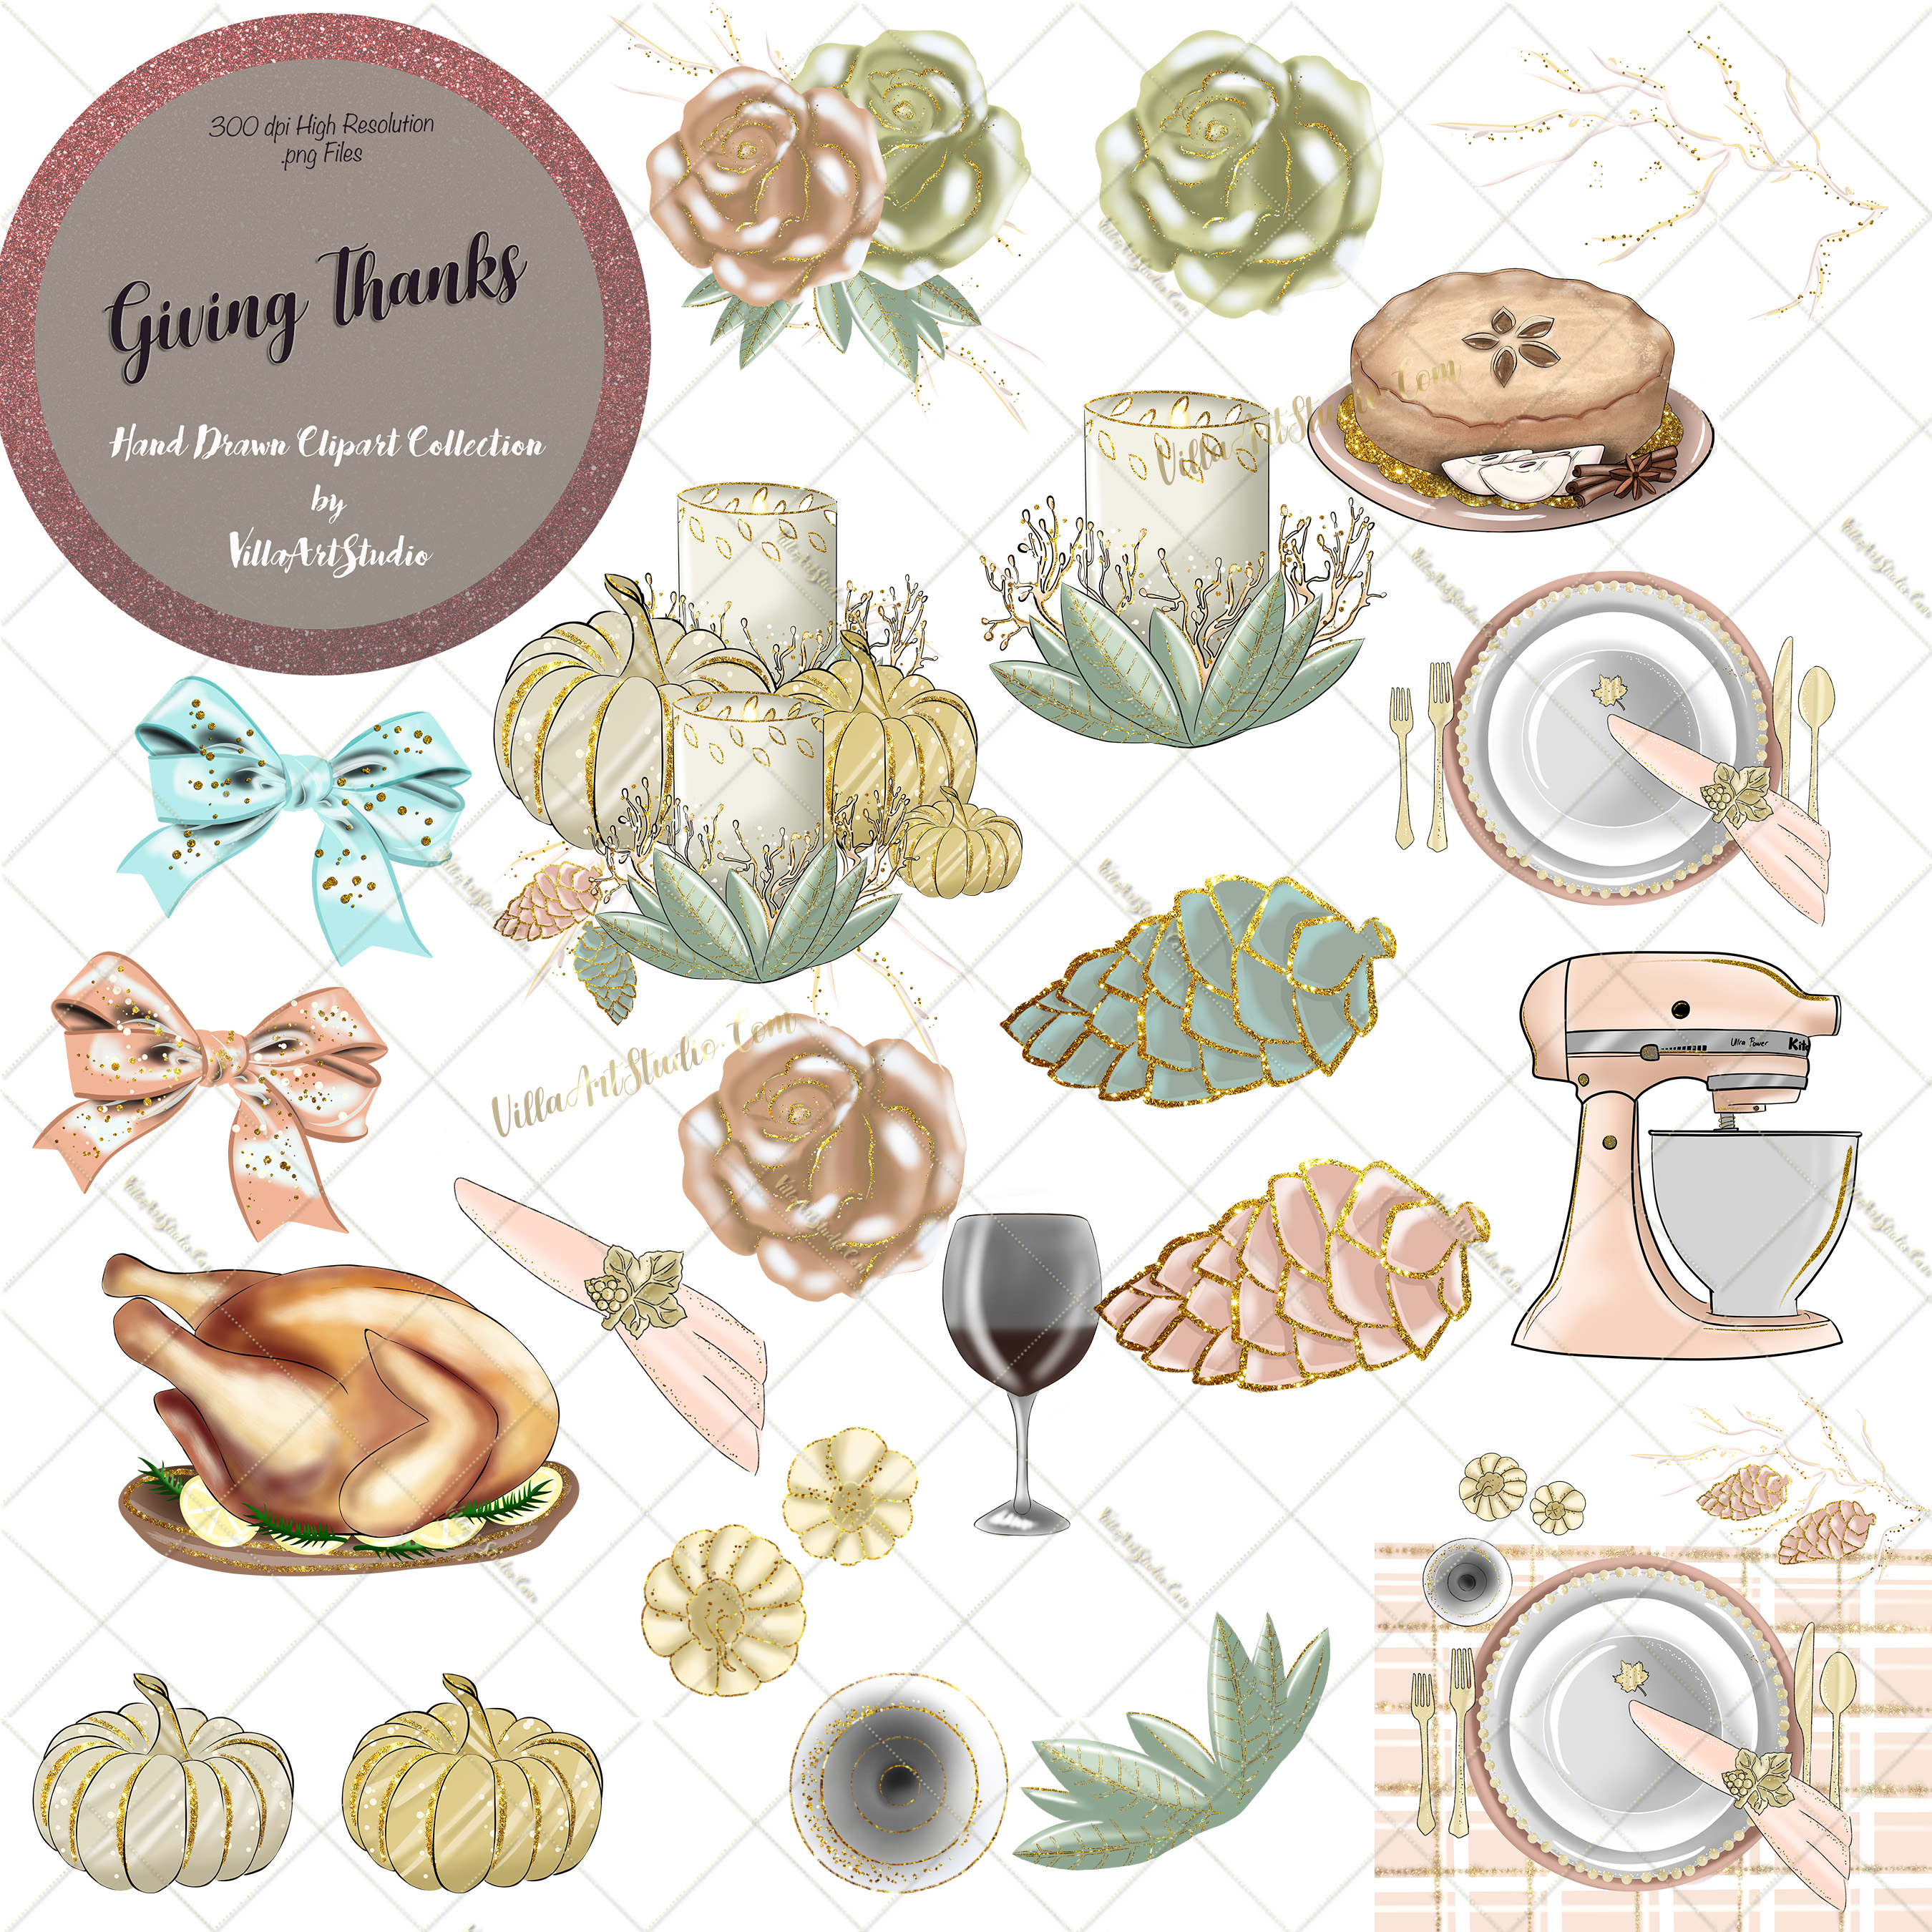 Giving Thanks Clipart Collection.